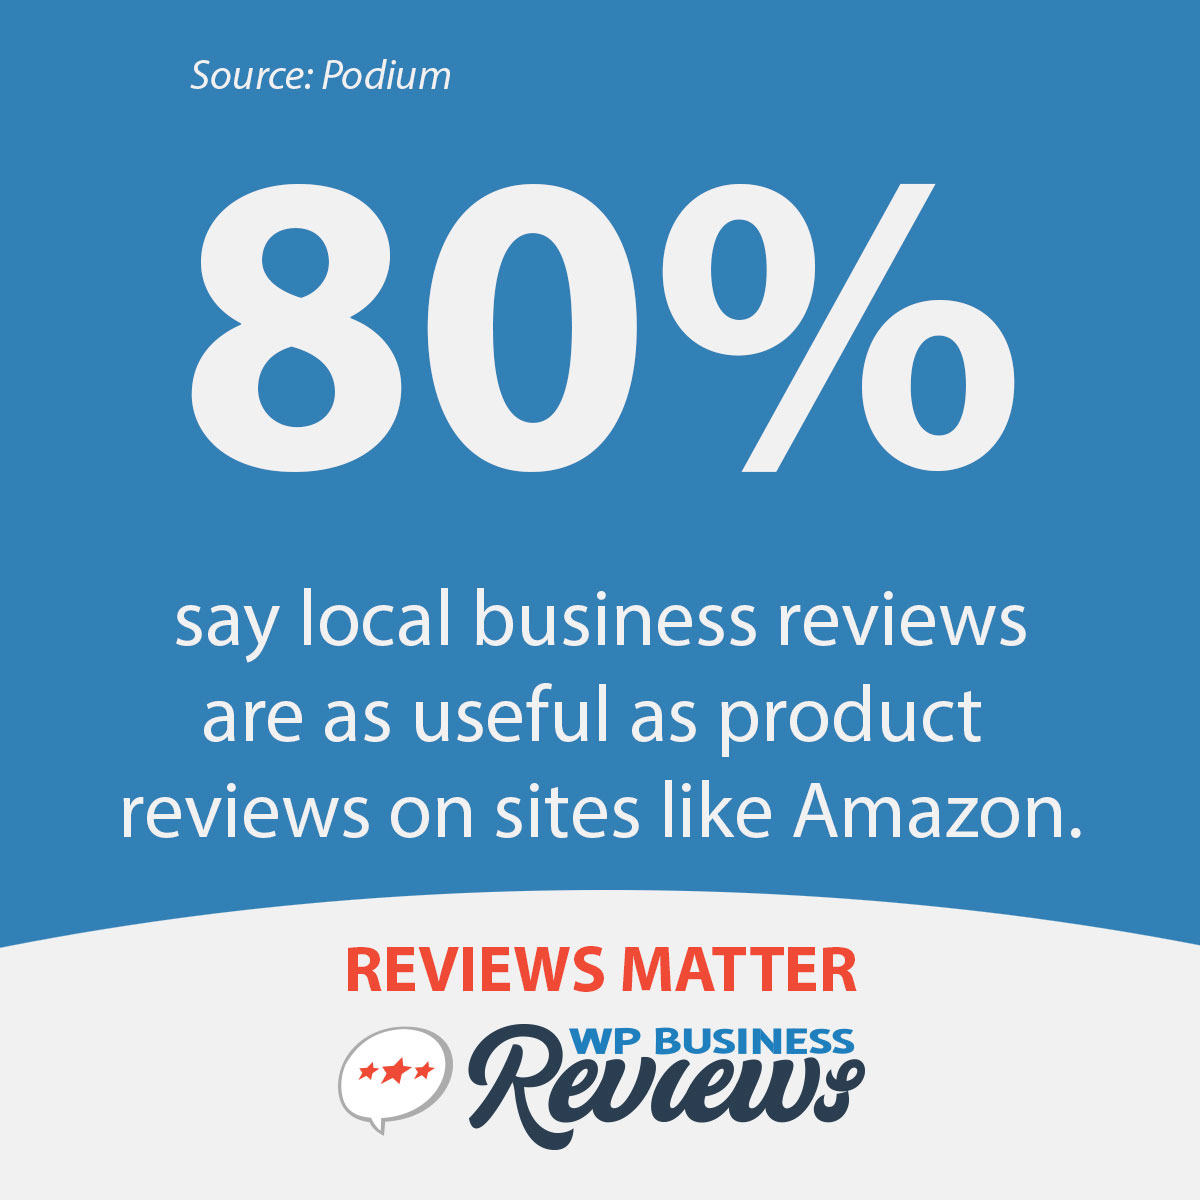 80% of people find local business reviews as useful as product reviews on sites like Amazon.